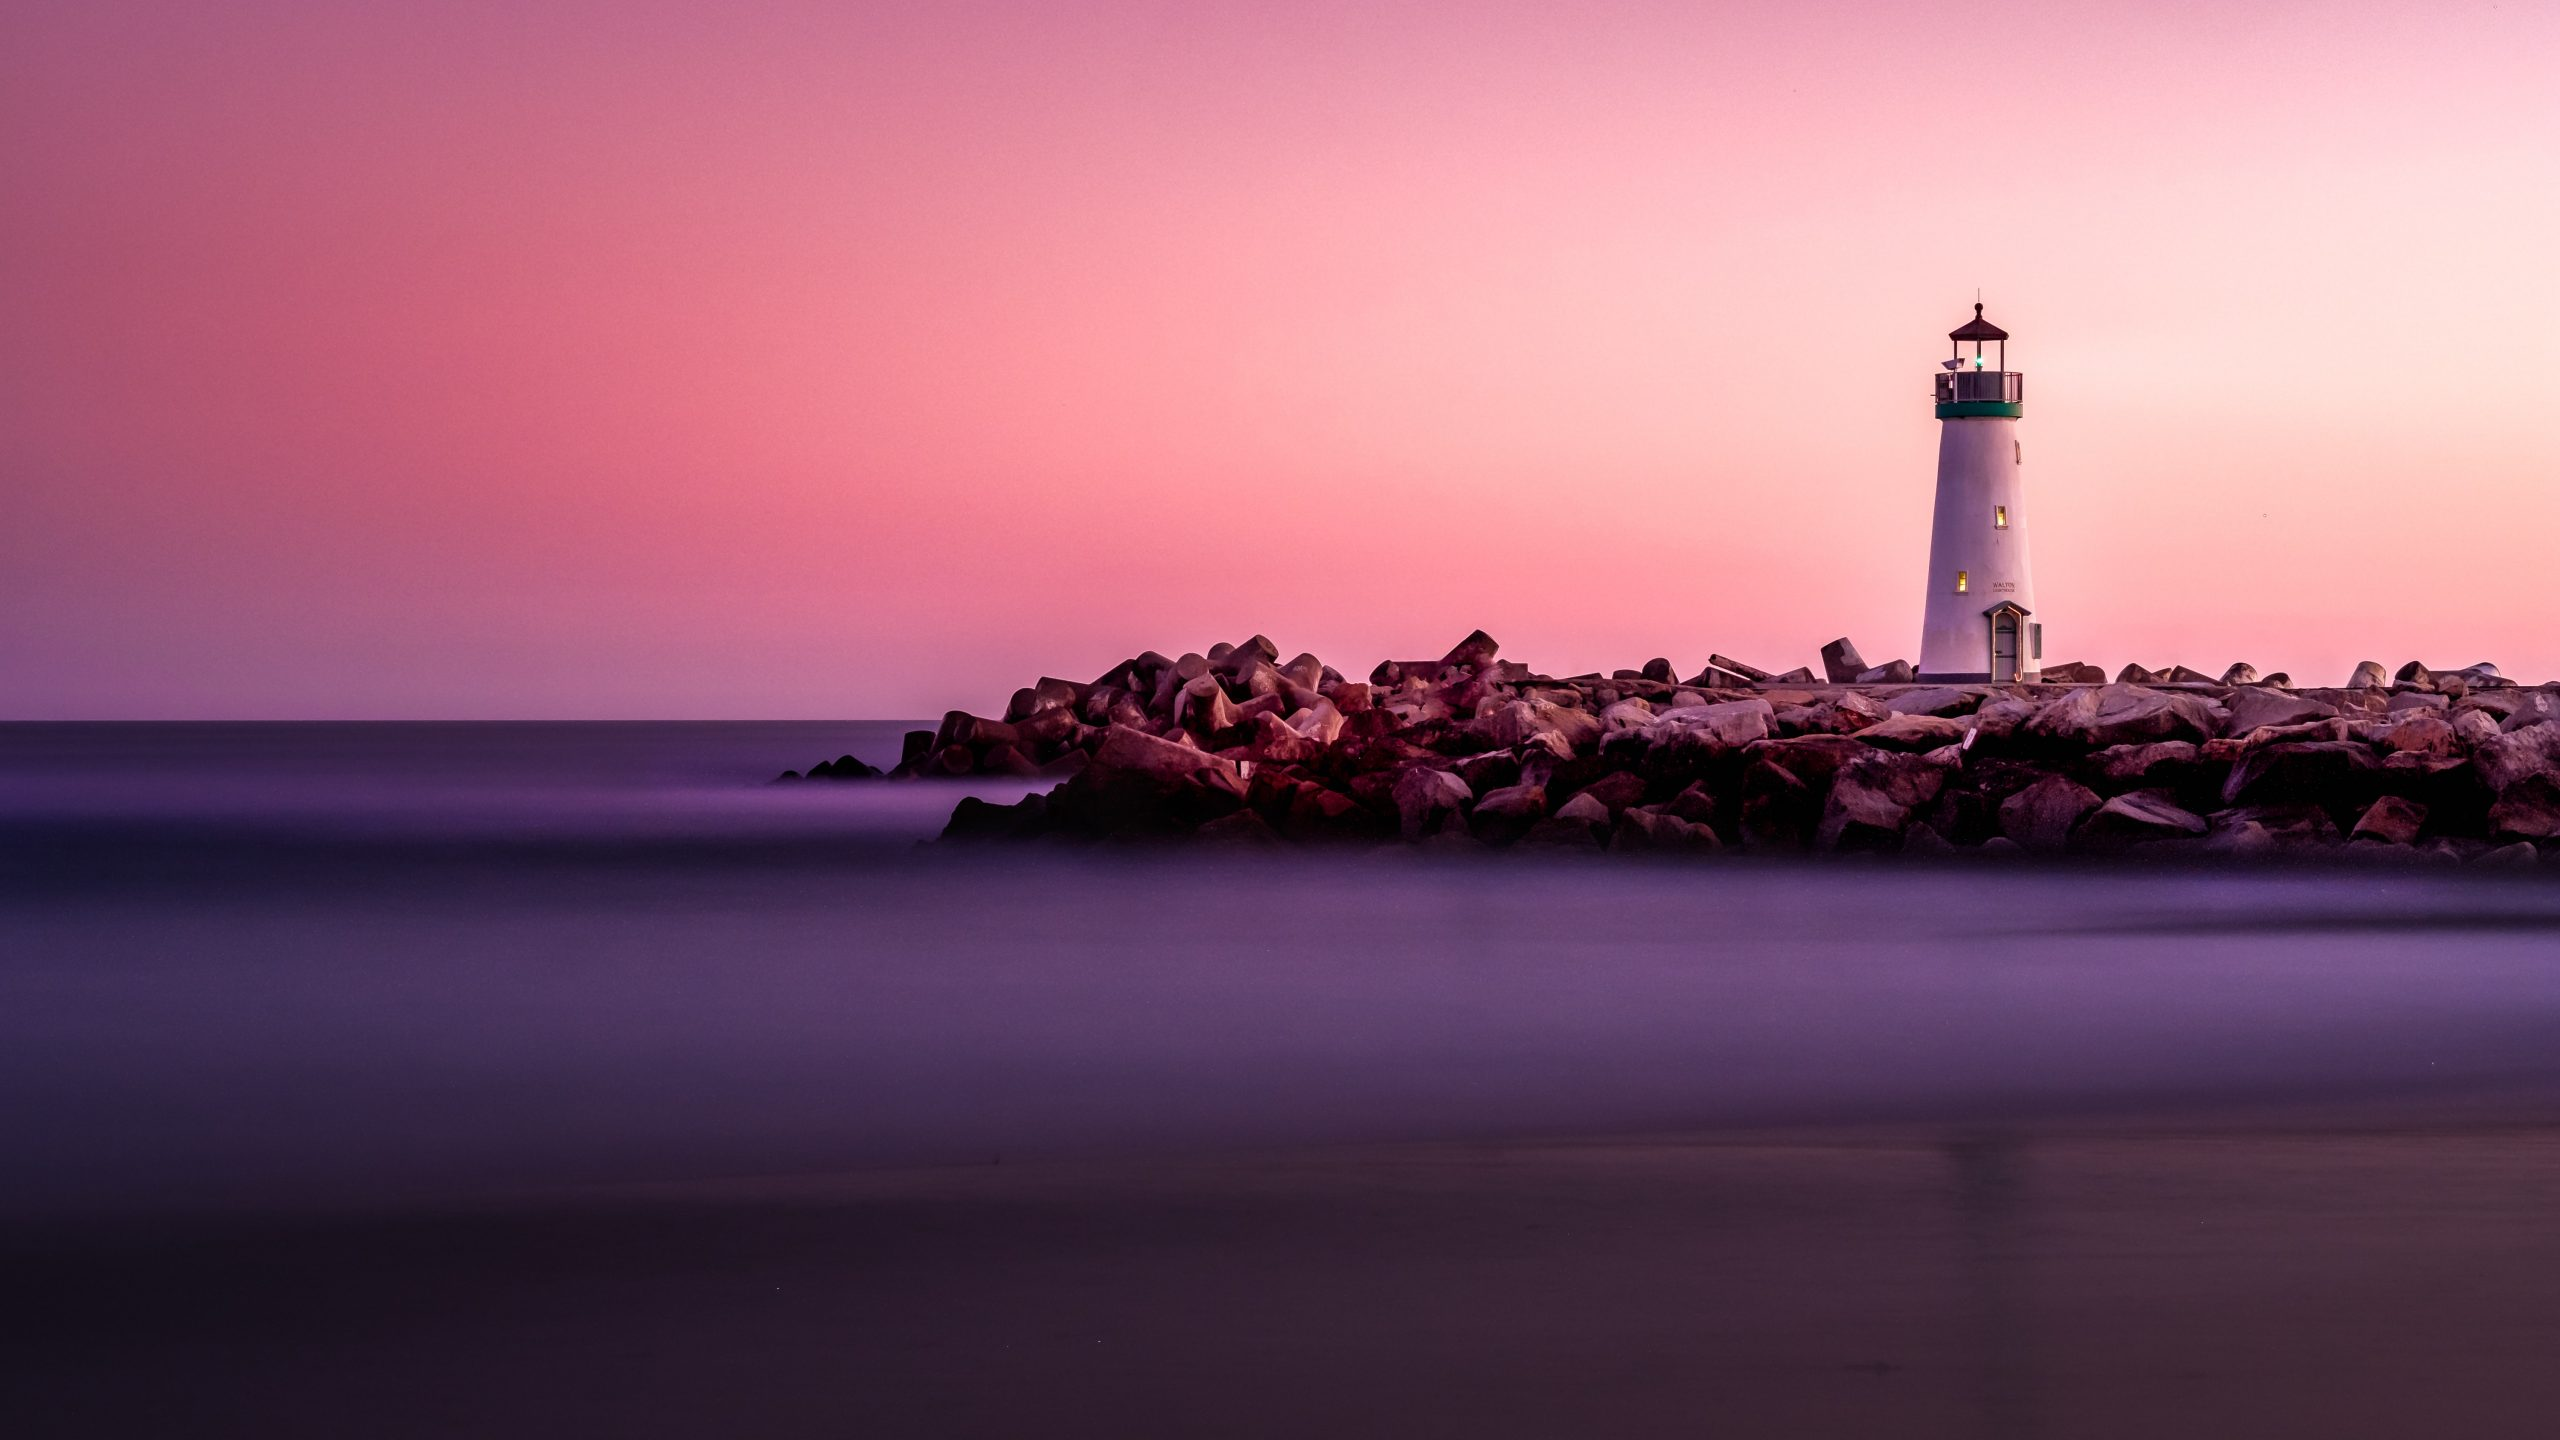 Lighthouse with a pink sky